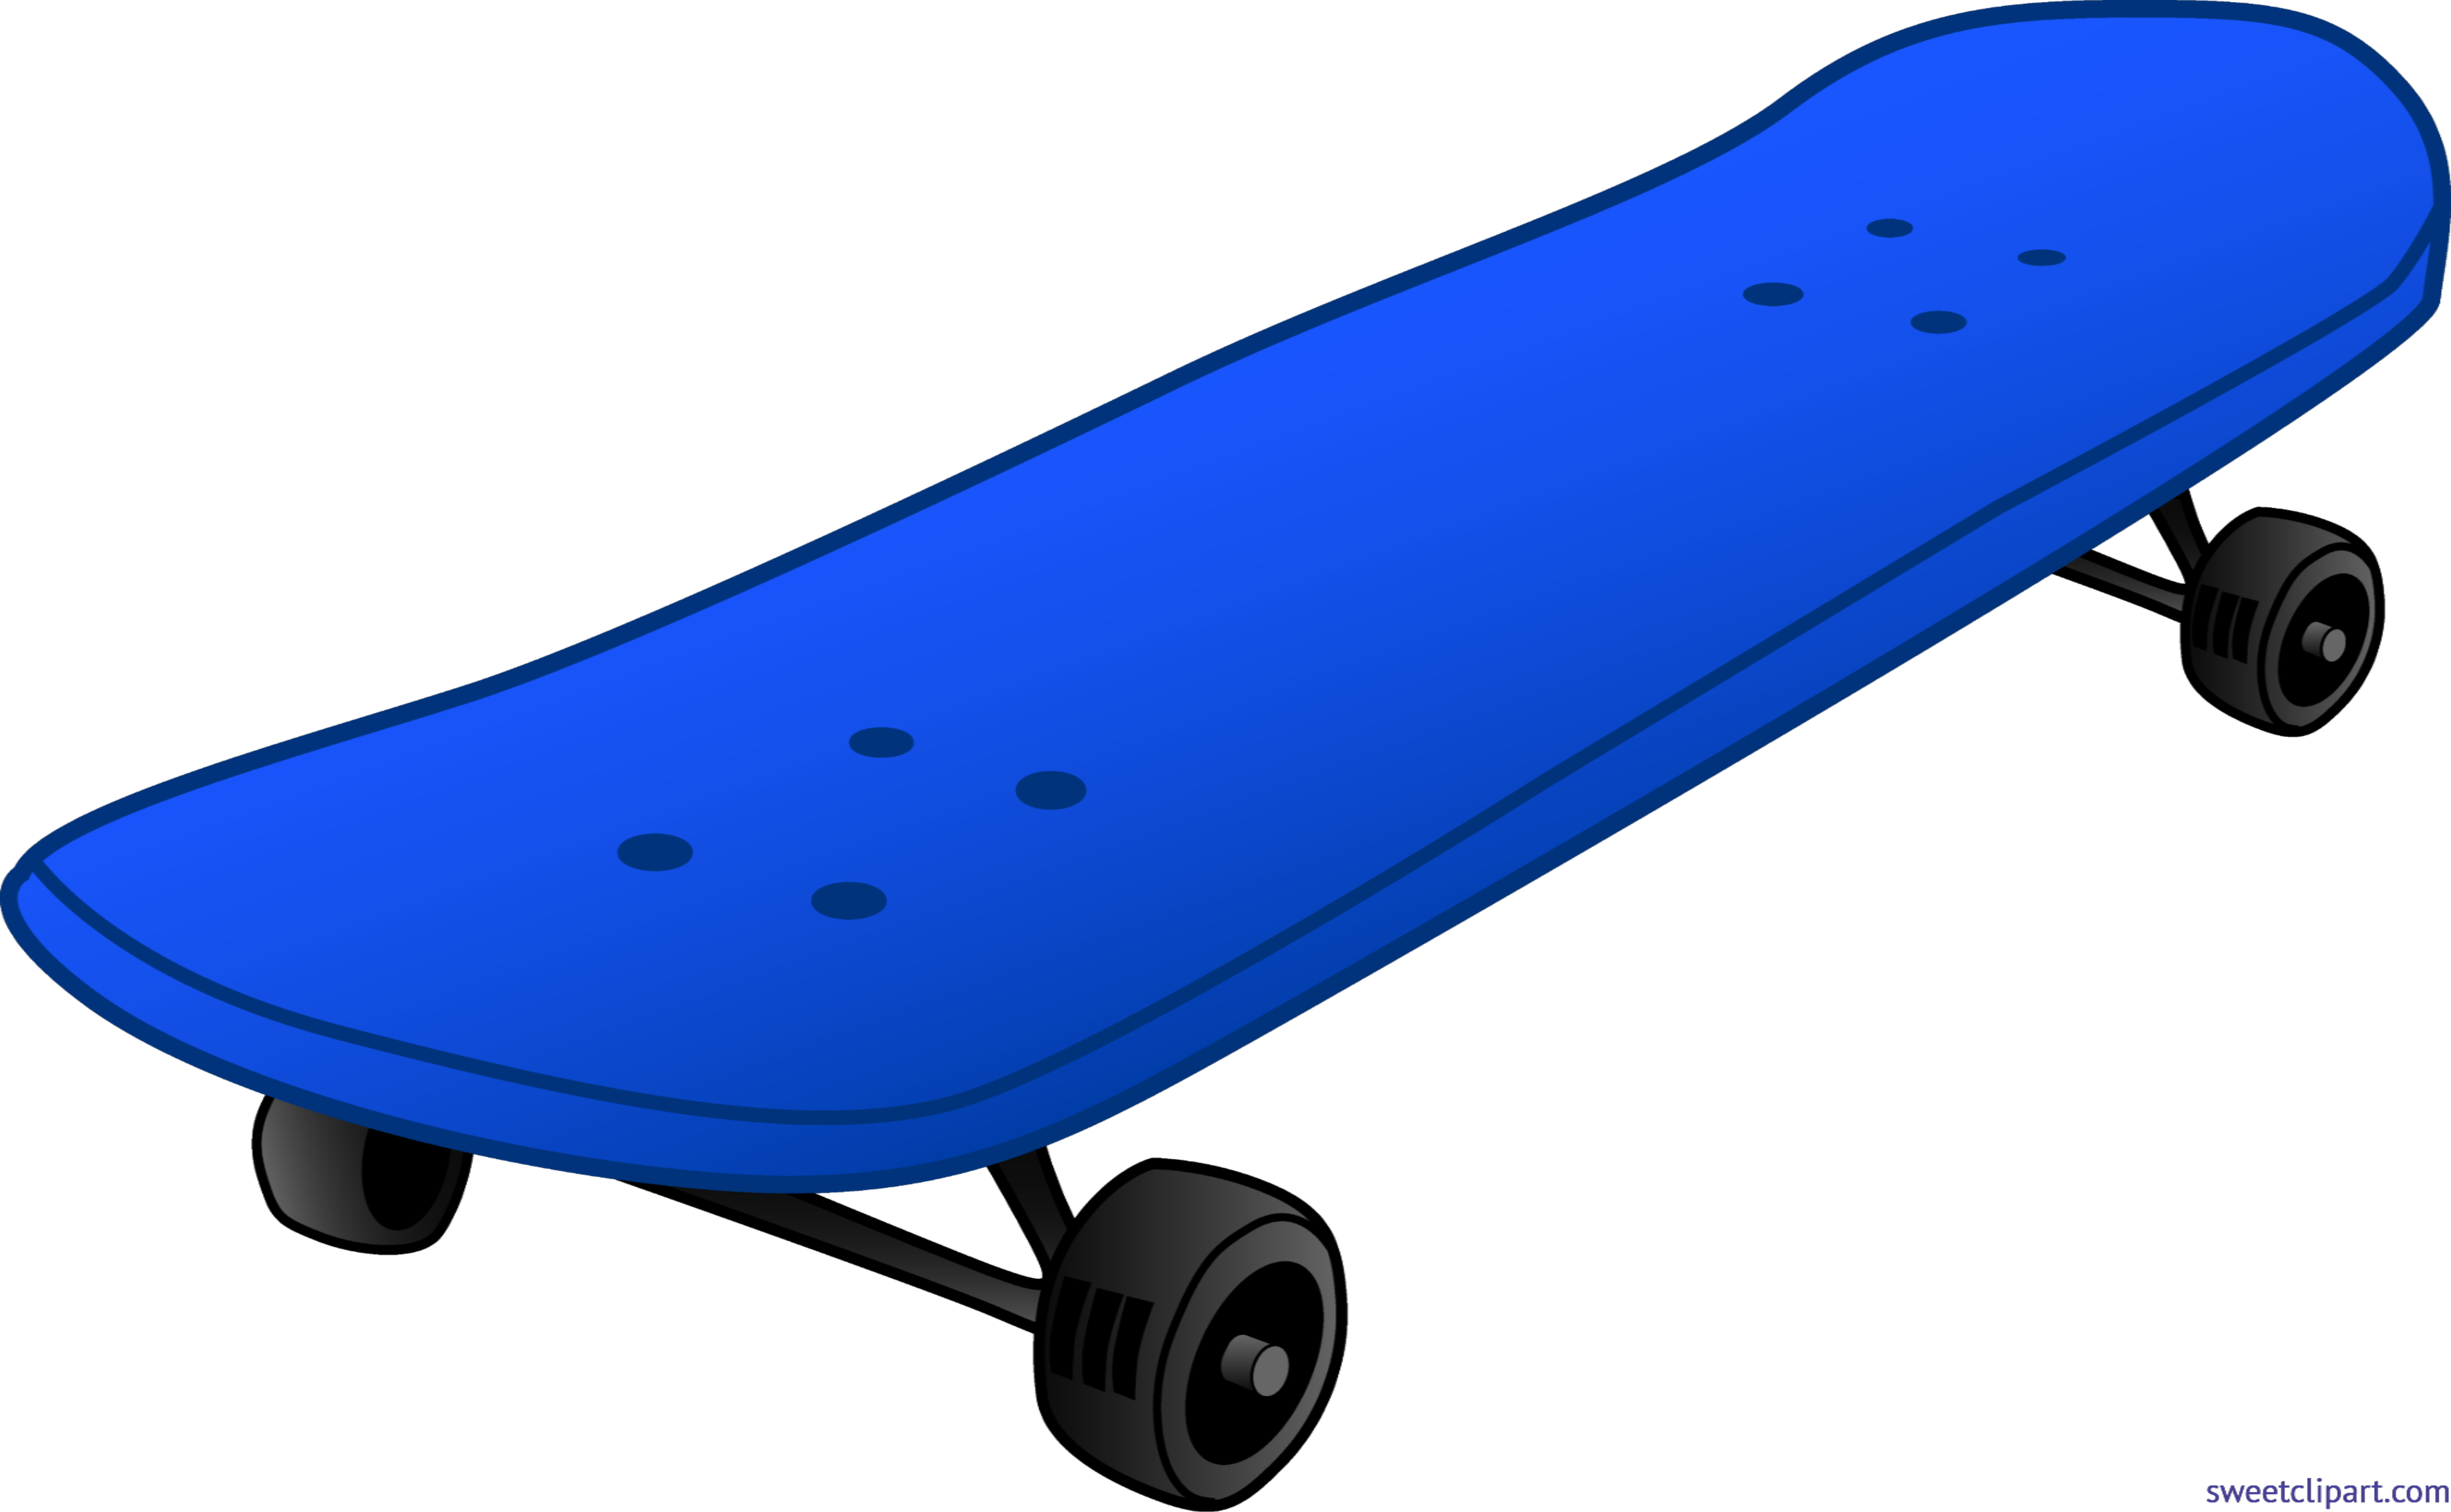 skateboard blue clip art sweet clip art rh m sweetclipart com skateboard clipart black and white skateboard clipart black and white